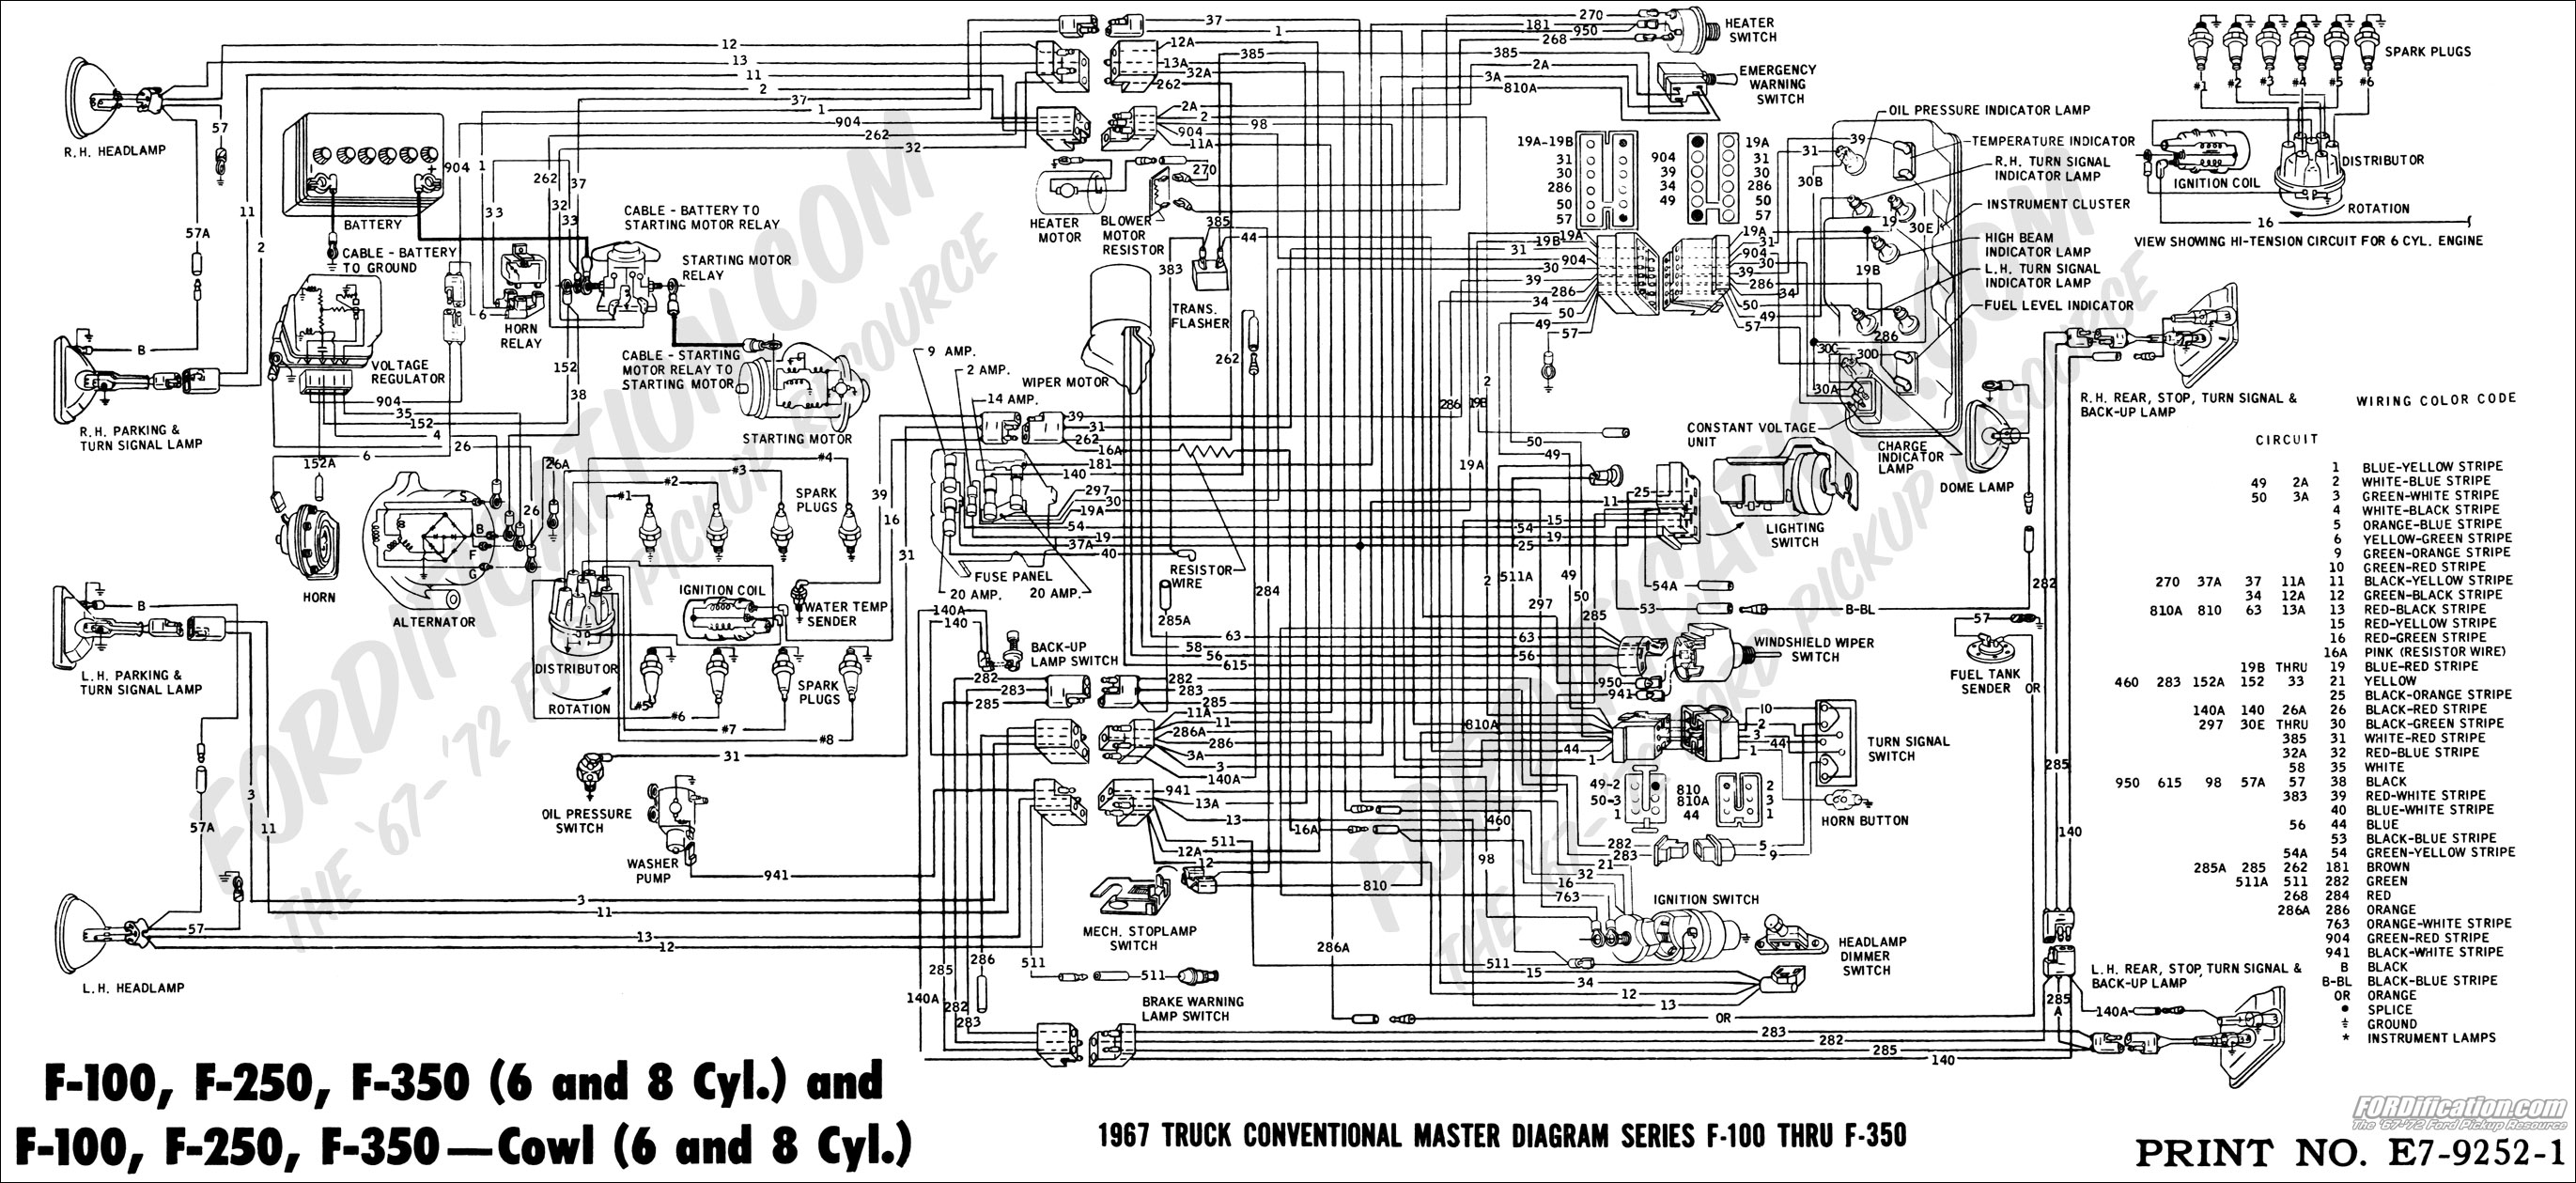 67masterdiagram 1998 ford f150 wiring diagram 1998 jeep grand cherokee wiring Ford Econoline Wiring-Diagram at webbmarketing.co